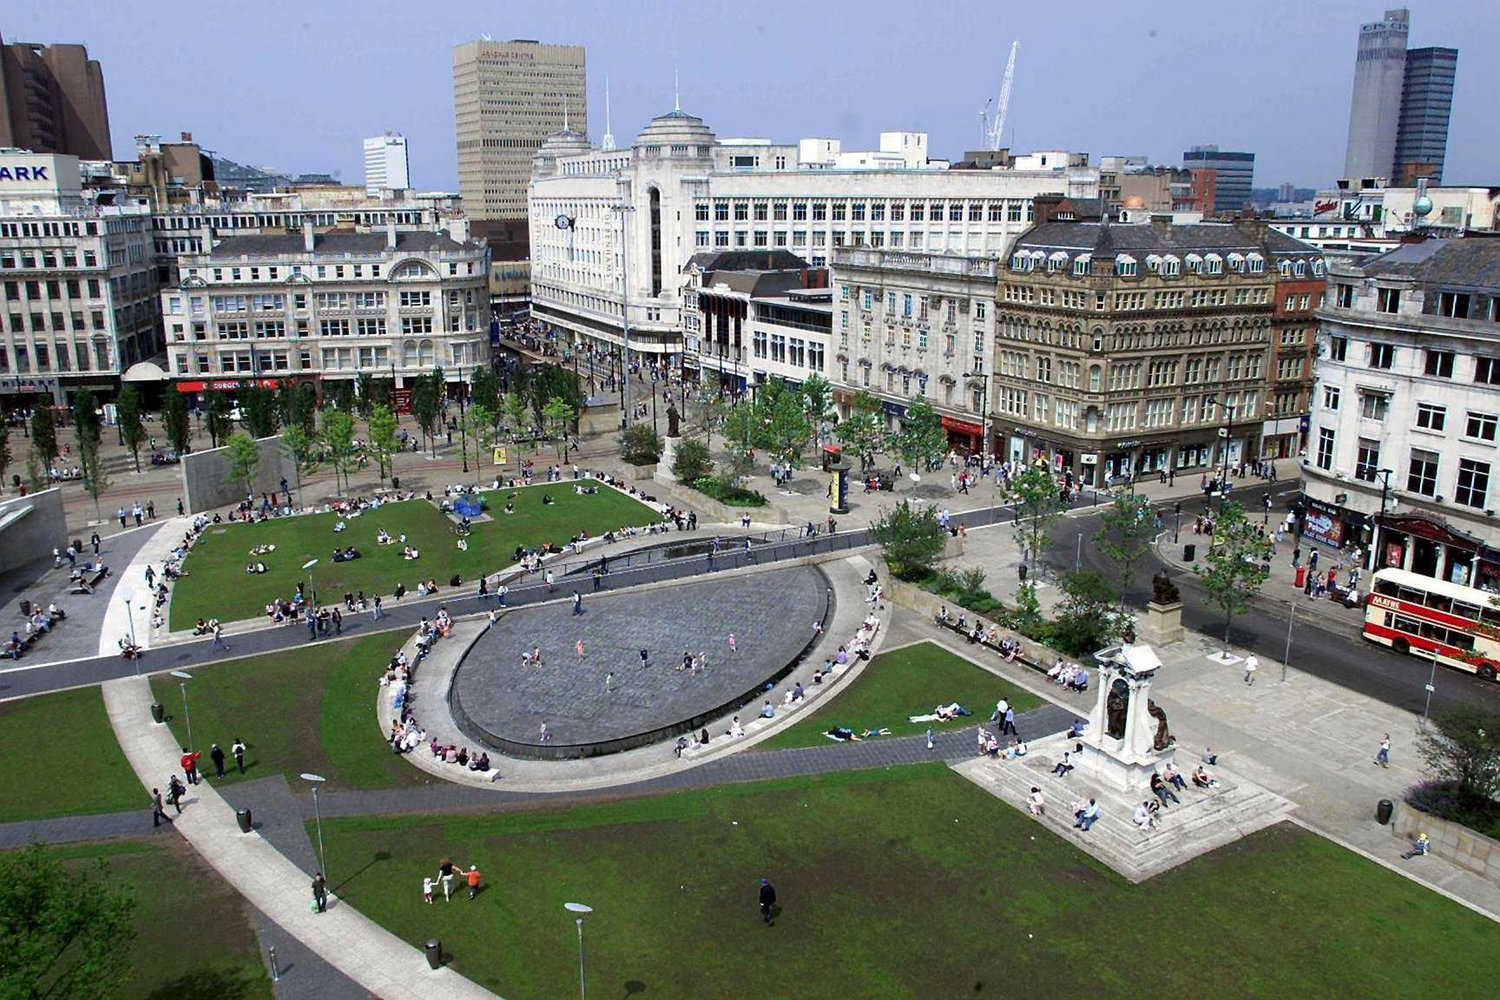 International design competition to be launched to make Piccadilly area 'world class', The Manc